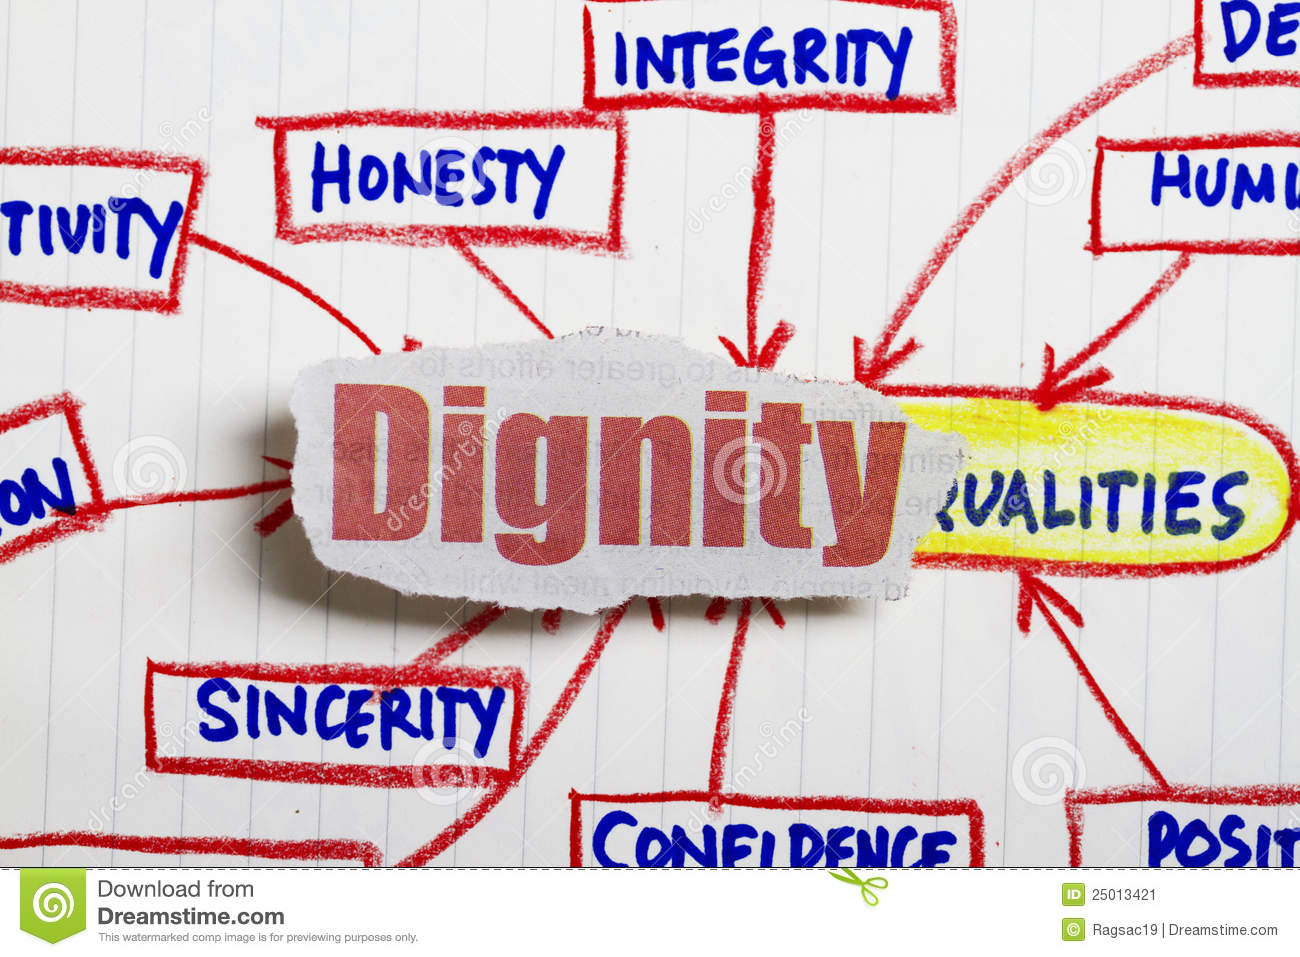 Dignity newspaper cutout with many positive attributes.